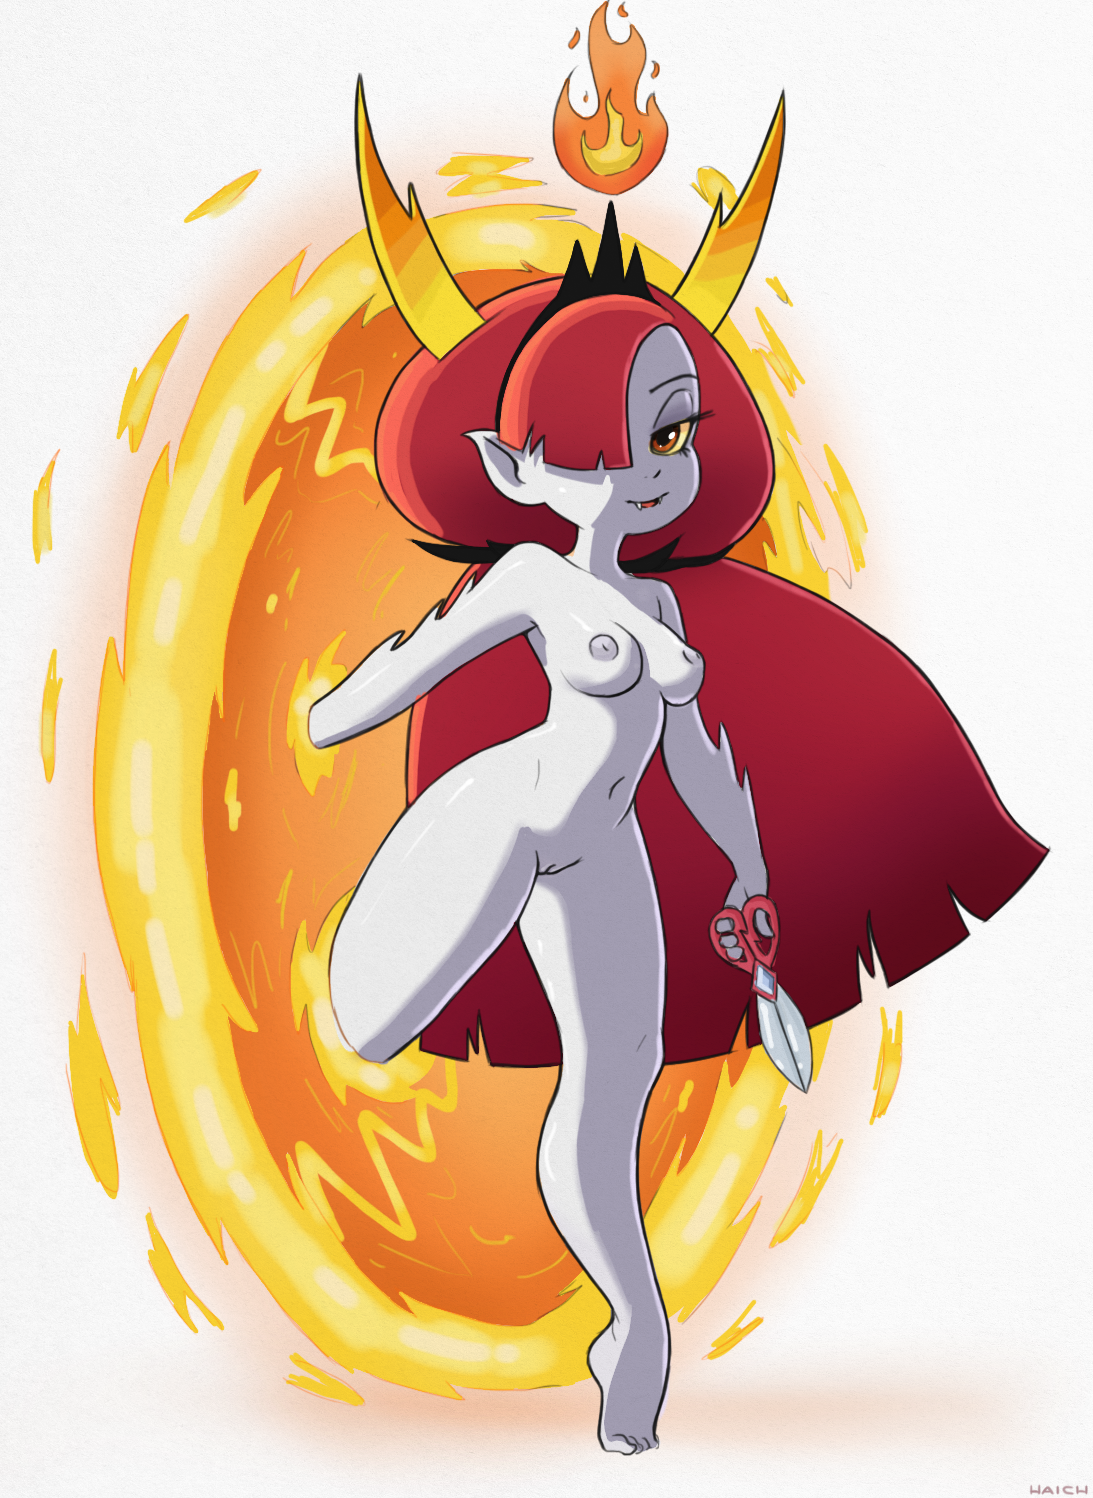 2173772_-_hekapoo_star_vs_the_forces_of_evil_haich